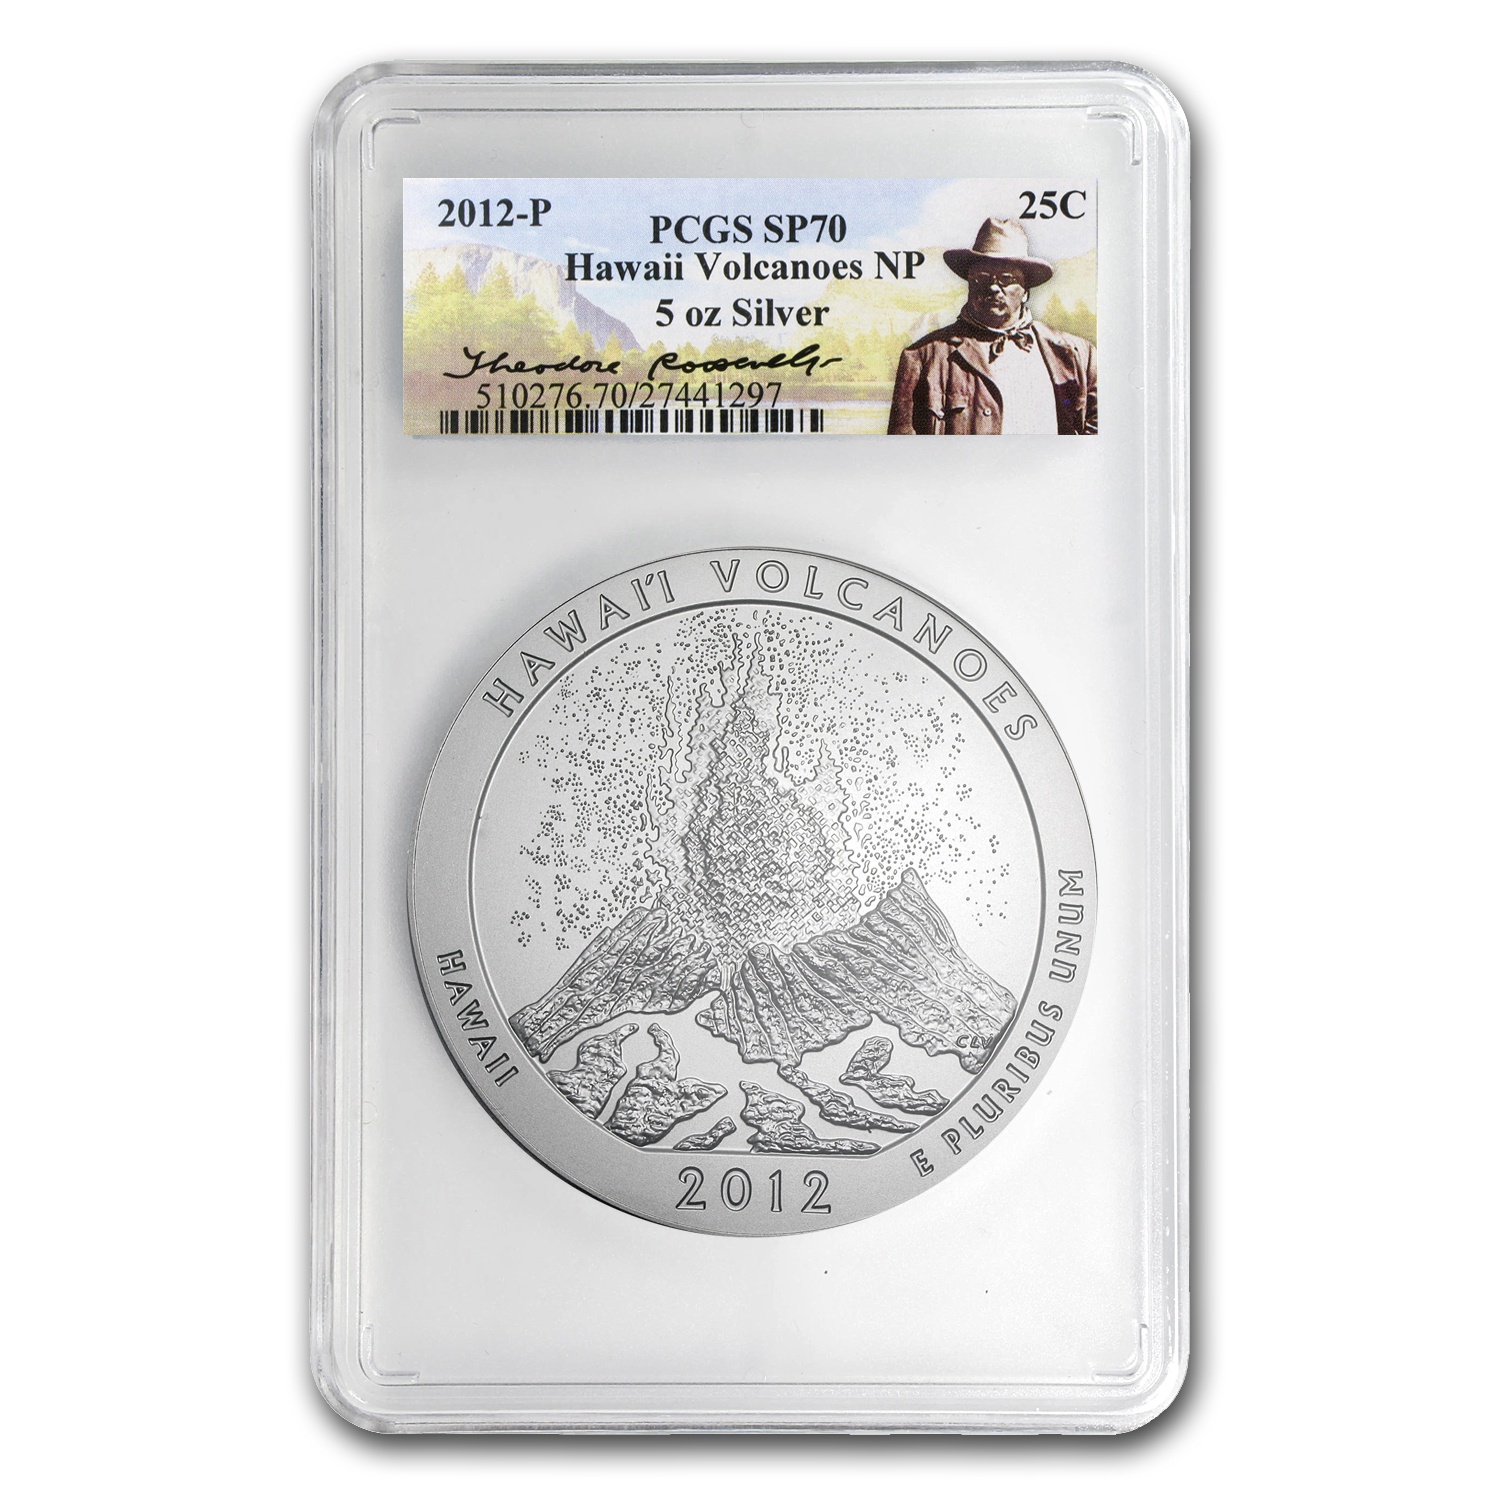 2012-P 5 oz Silver Hawaii Volcanoes SP-70 PCGS Roosevelt